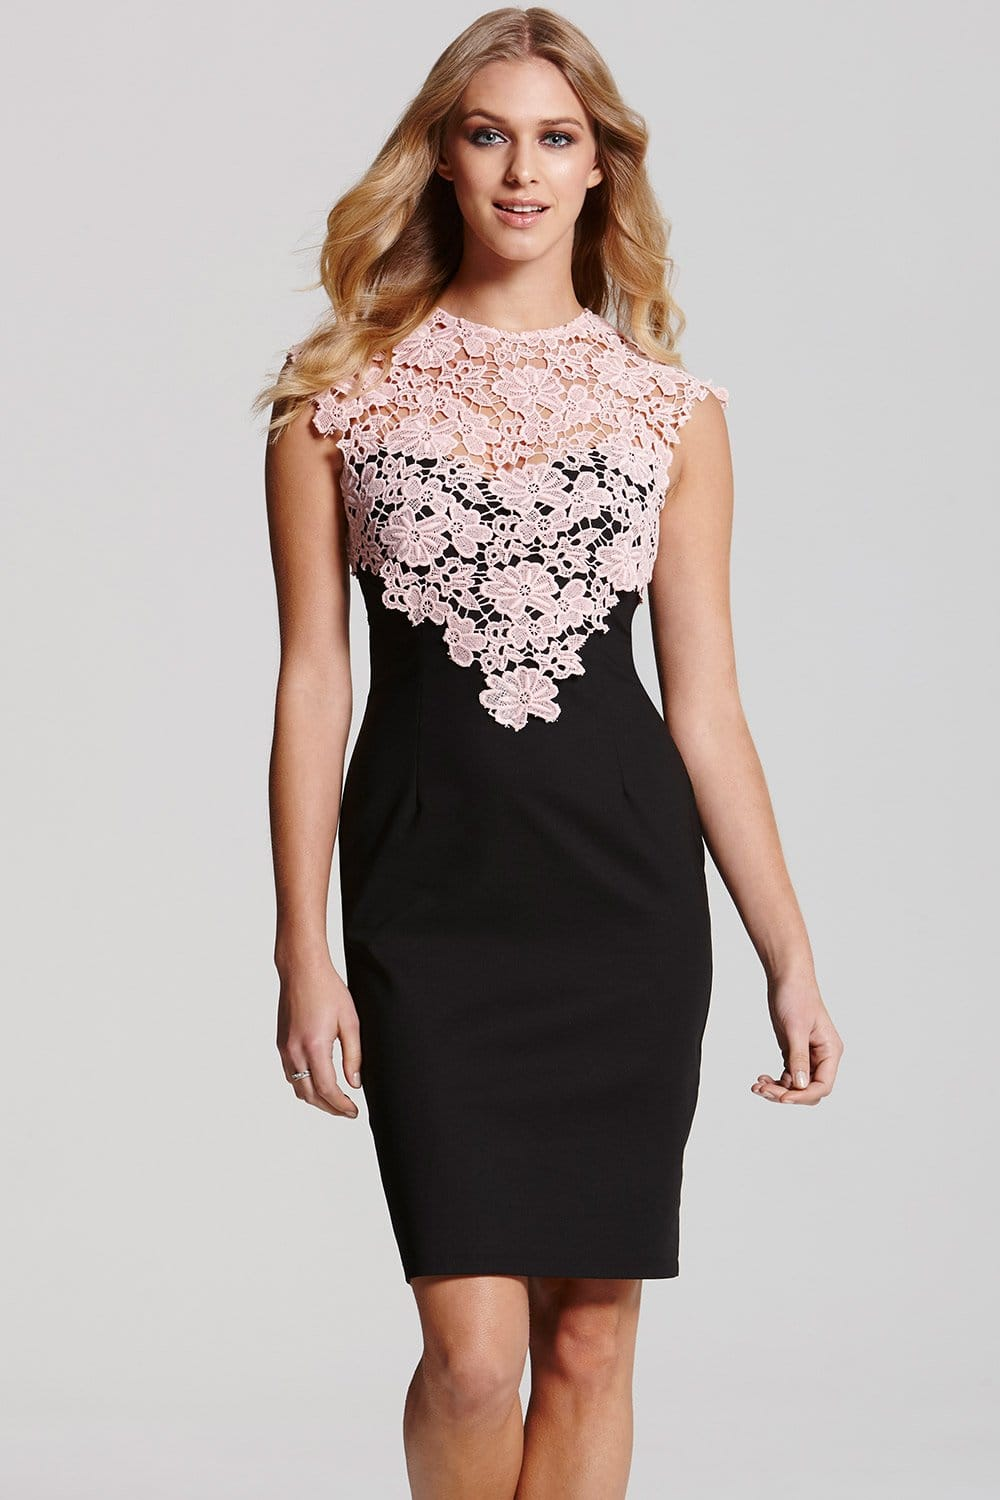 Outlet Paper Dolls Black And Pink Lace Dress Outlet